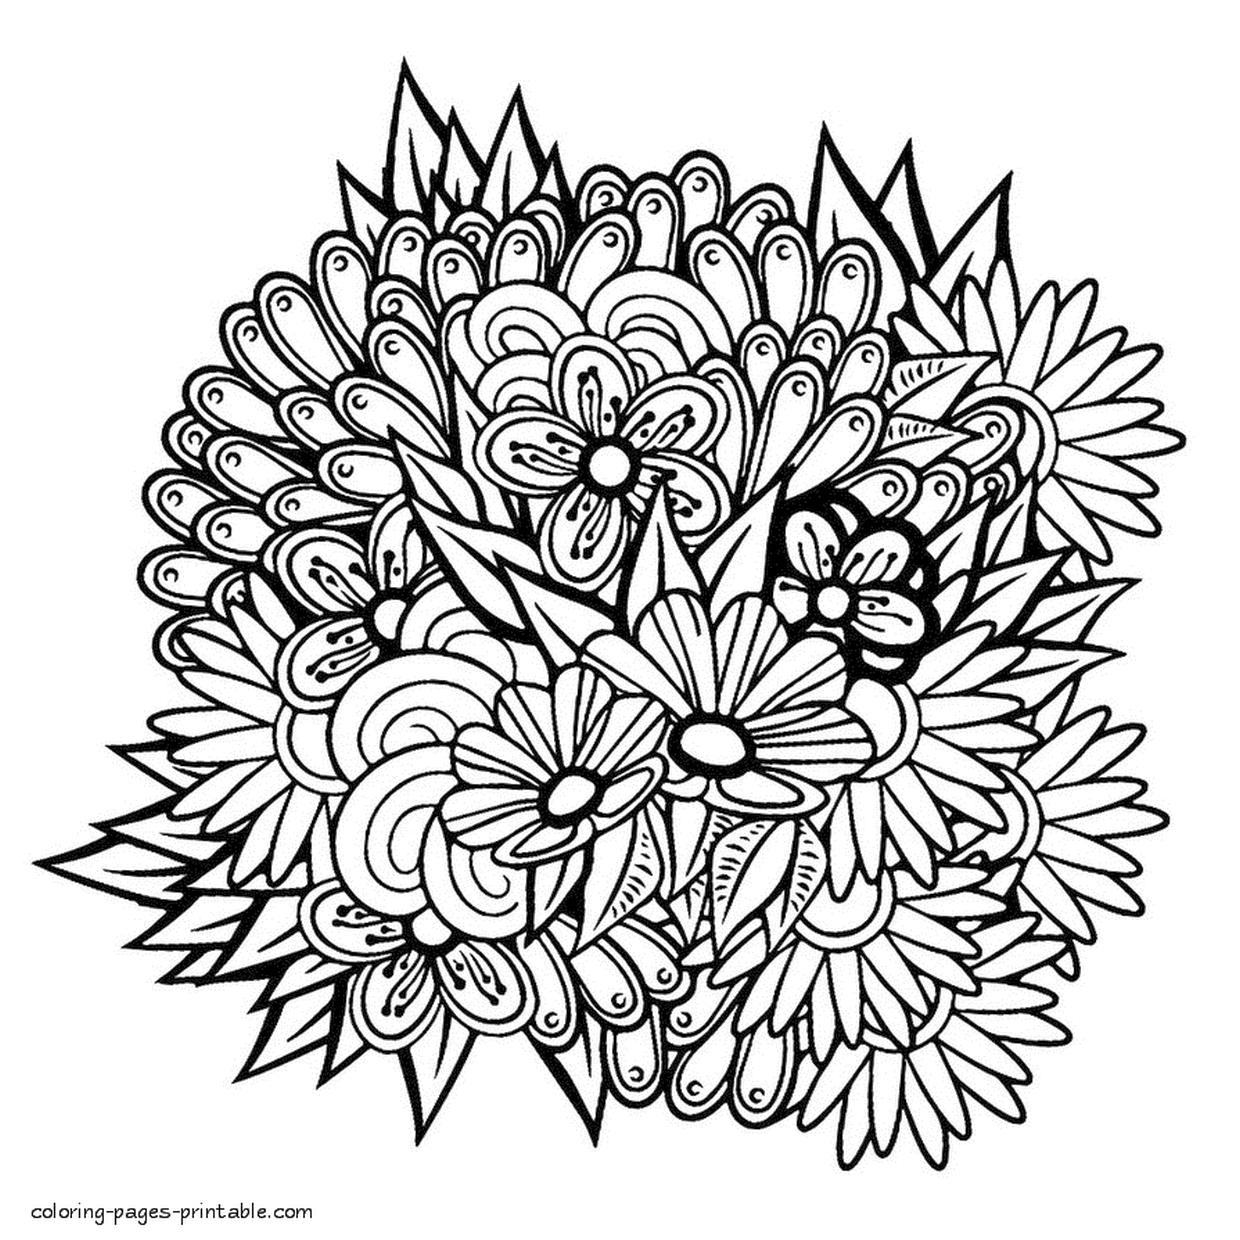 Adult Coloring Pages Floral Patterns Printable ujk1